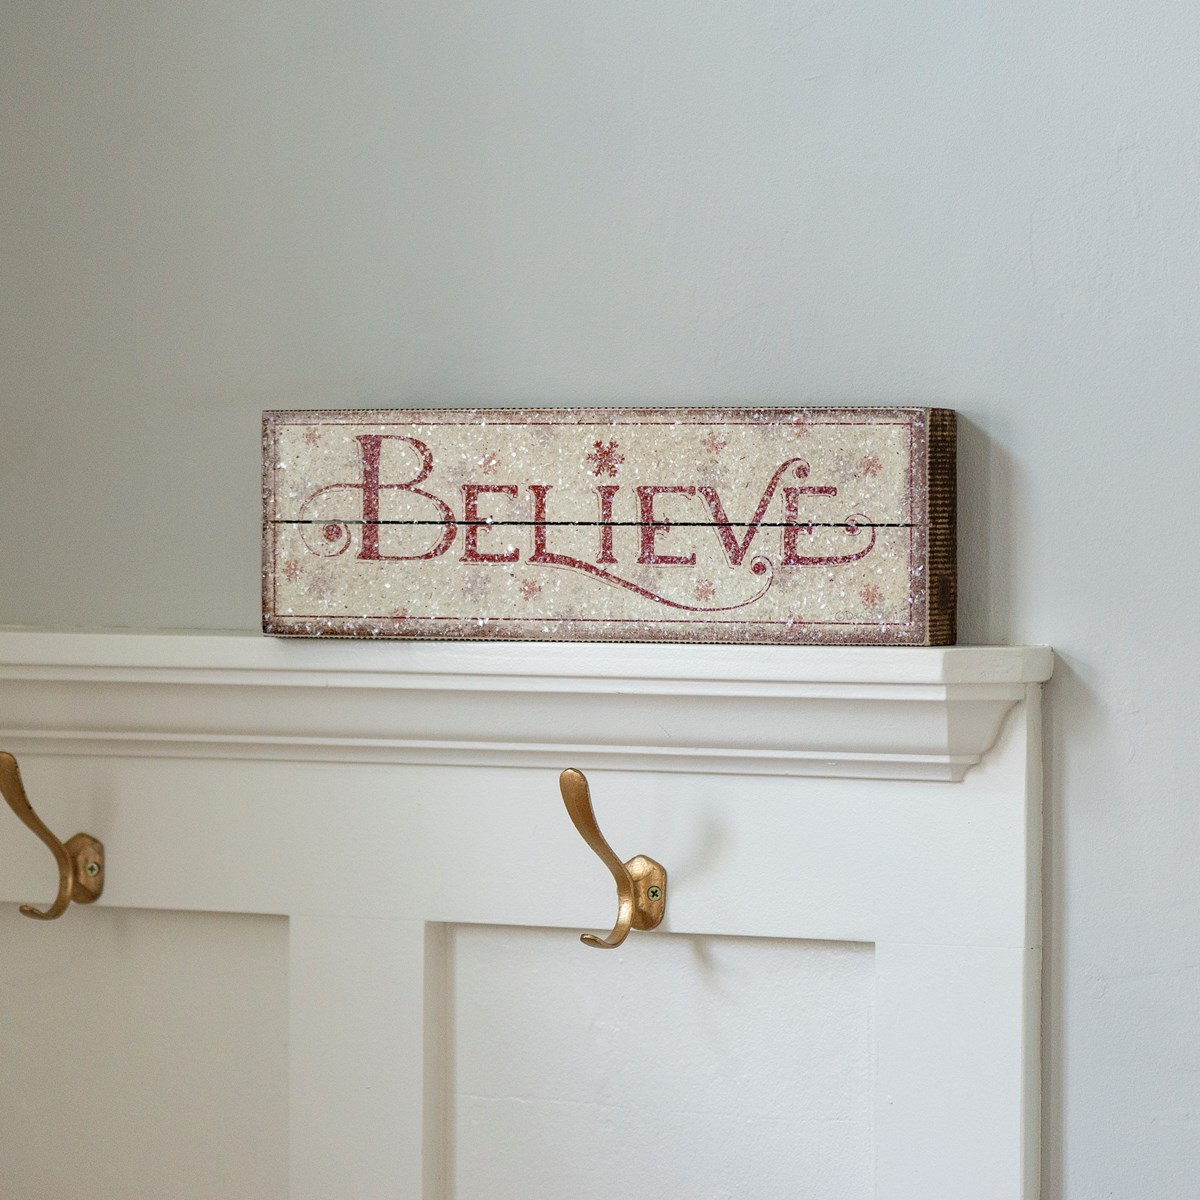 "Slat Box Sign - Believe  - 15.50"" x 5"" x 1.75"" - Wood, Paper, Mica"